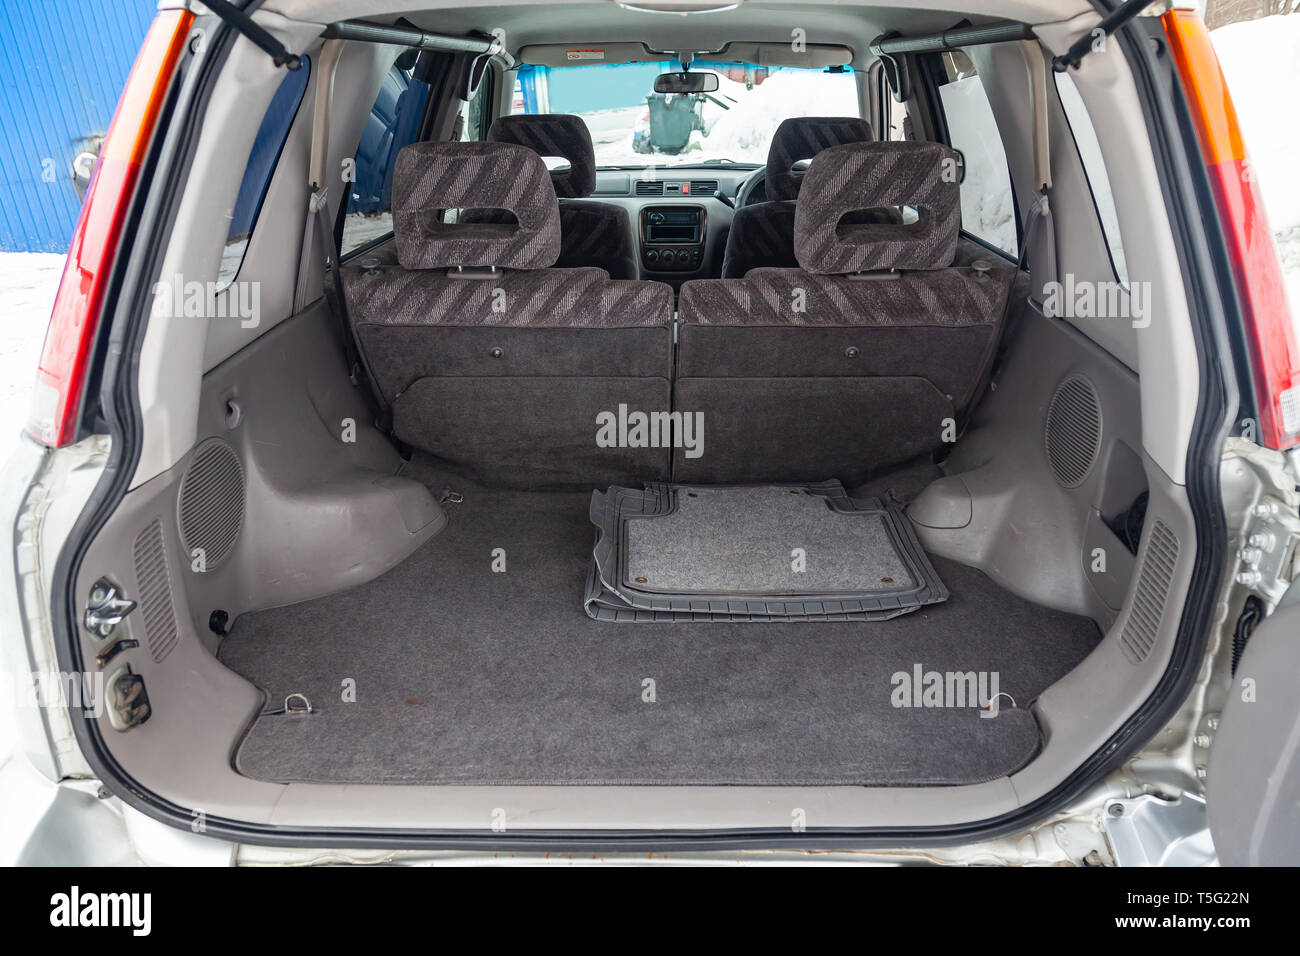 View to the gray color interior of suv car with trunk luggage compartment with striped fabric upholstery after cleaning and detailing in the vehicle r - Stock Image